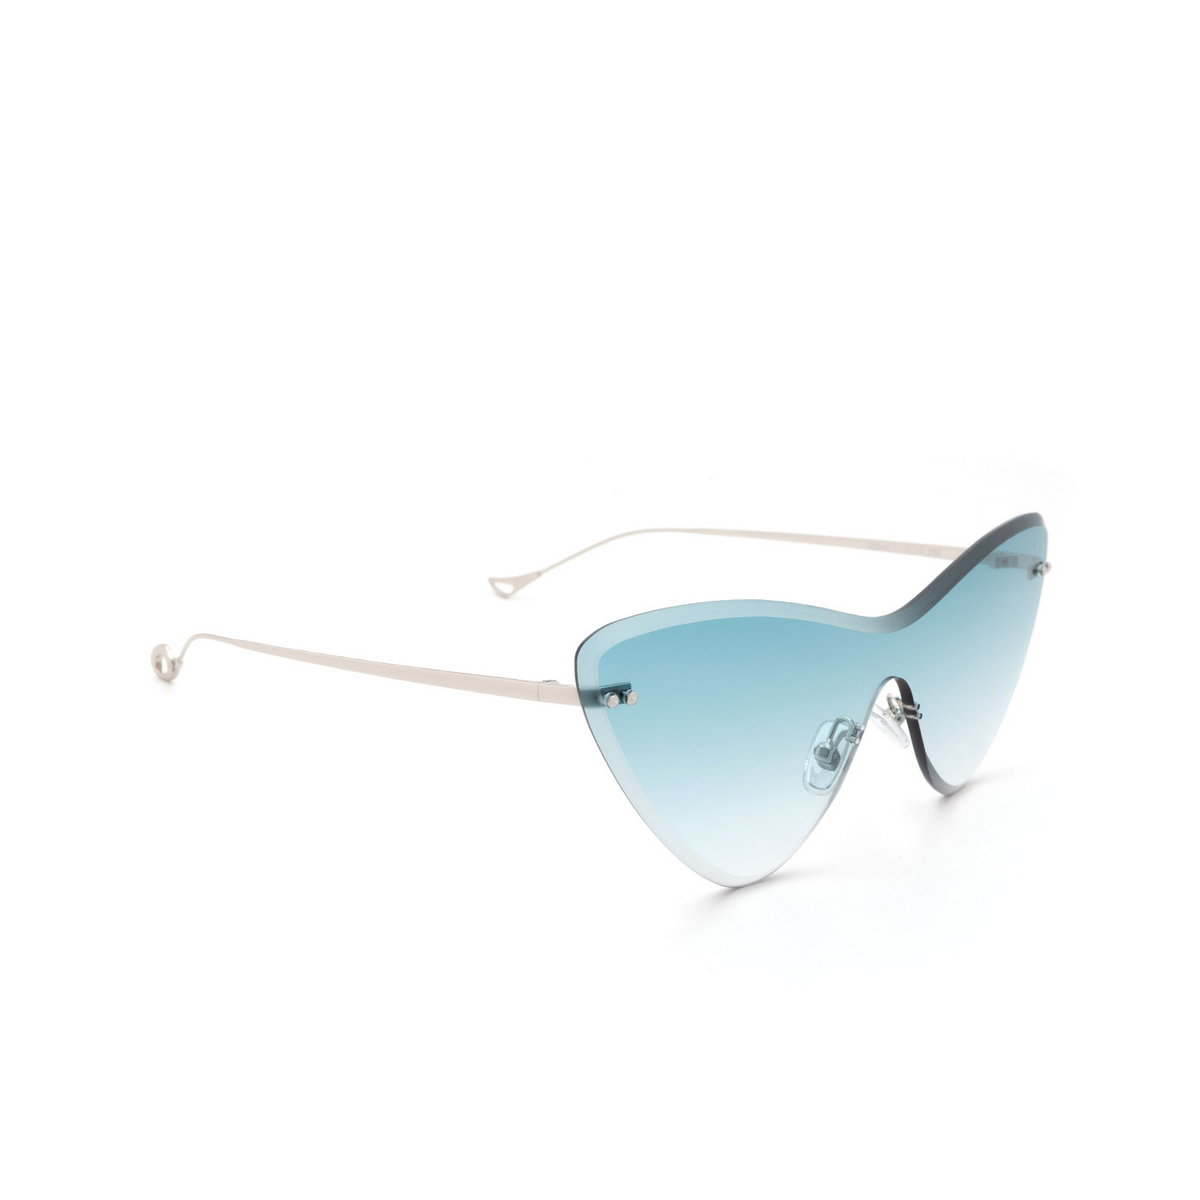 Eyepetizer® Mask Sunglasses: Ocean color Silver C.1-21 - three-quarters view.